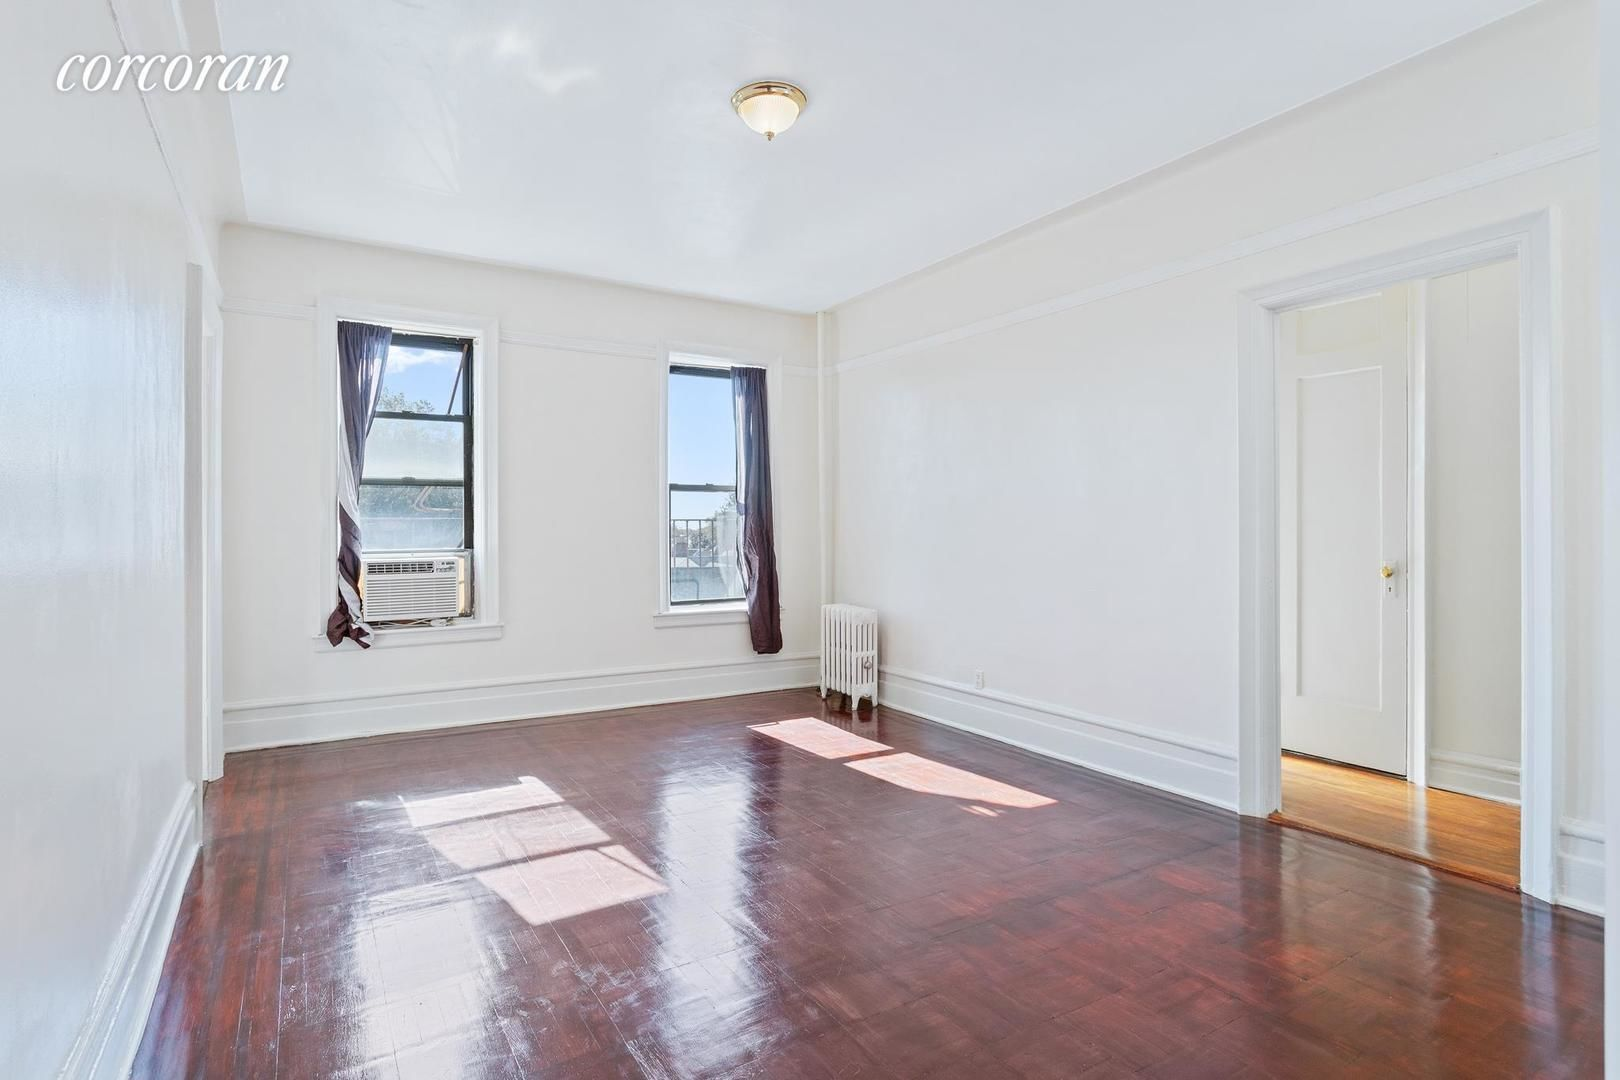 Apartment for sale at 86-10 109th Street, Apt E4